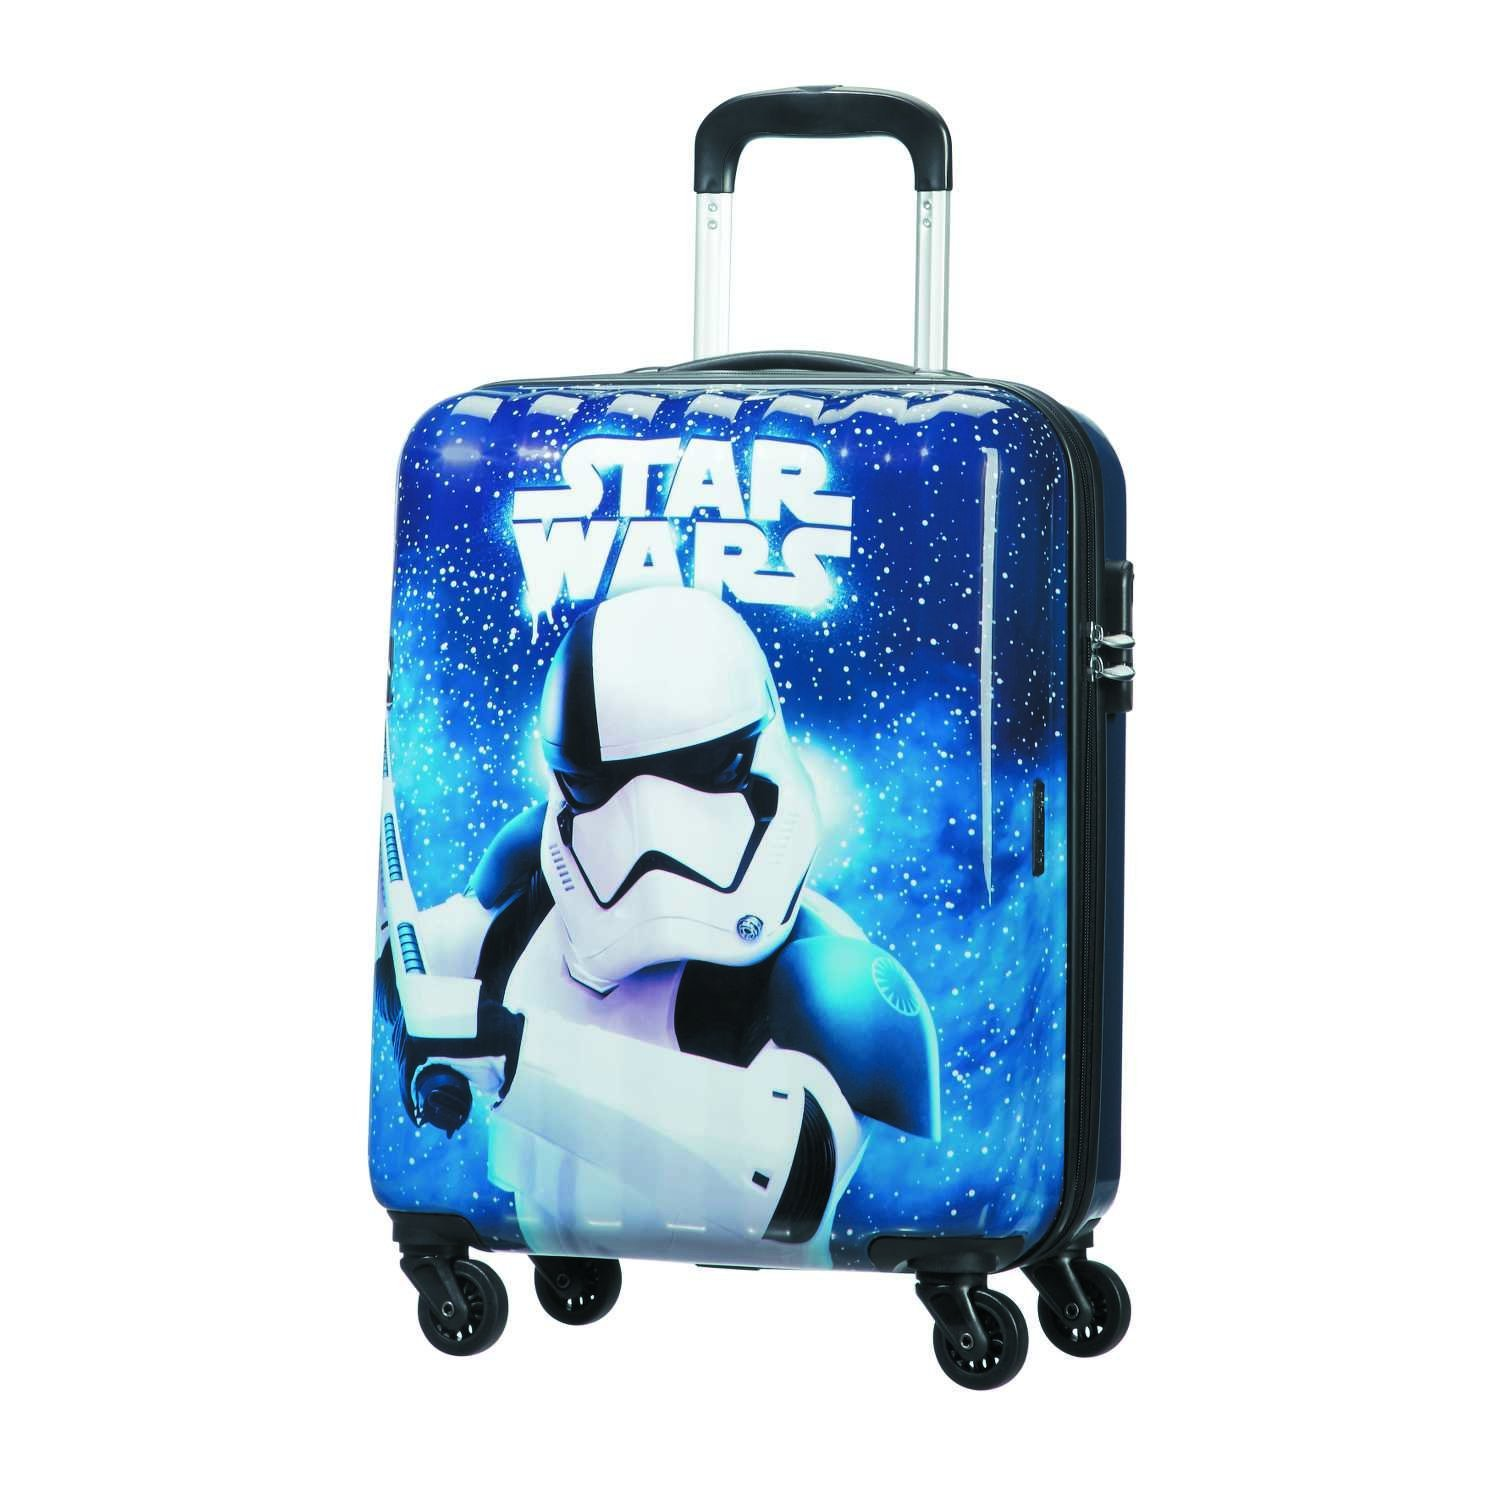 Star Wars Trolley amazon